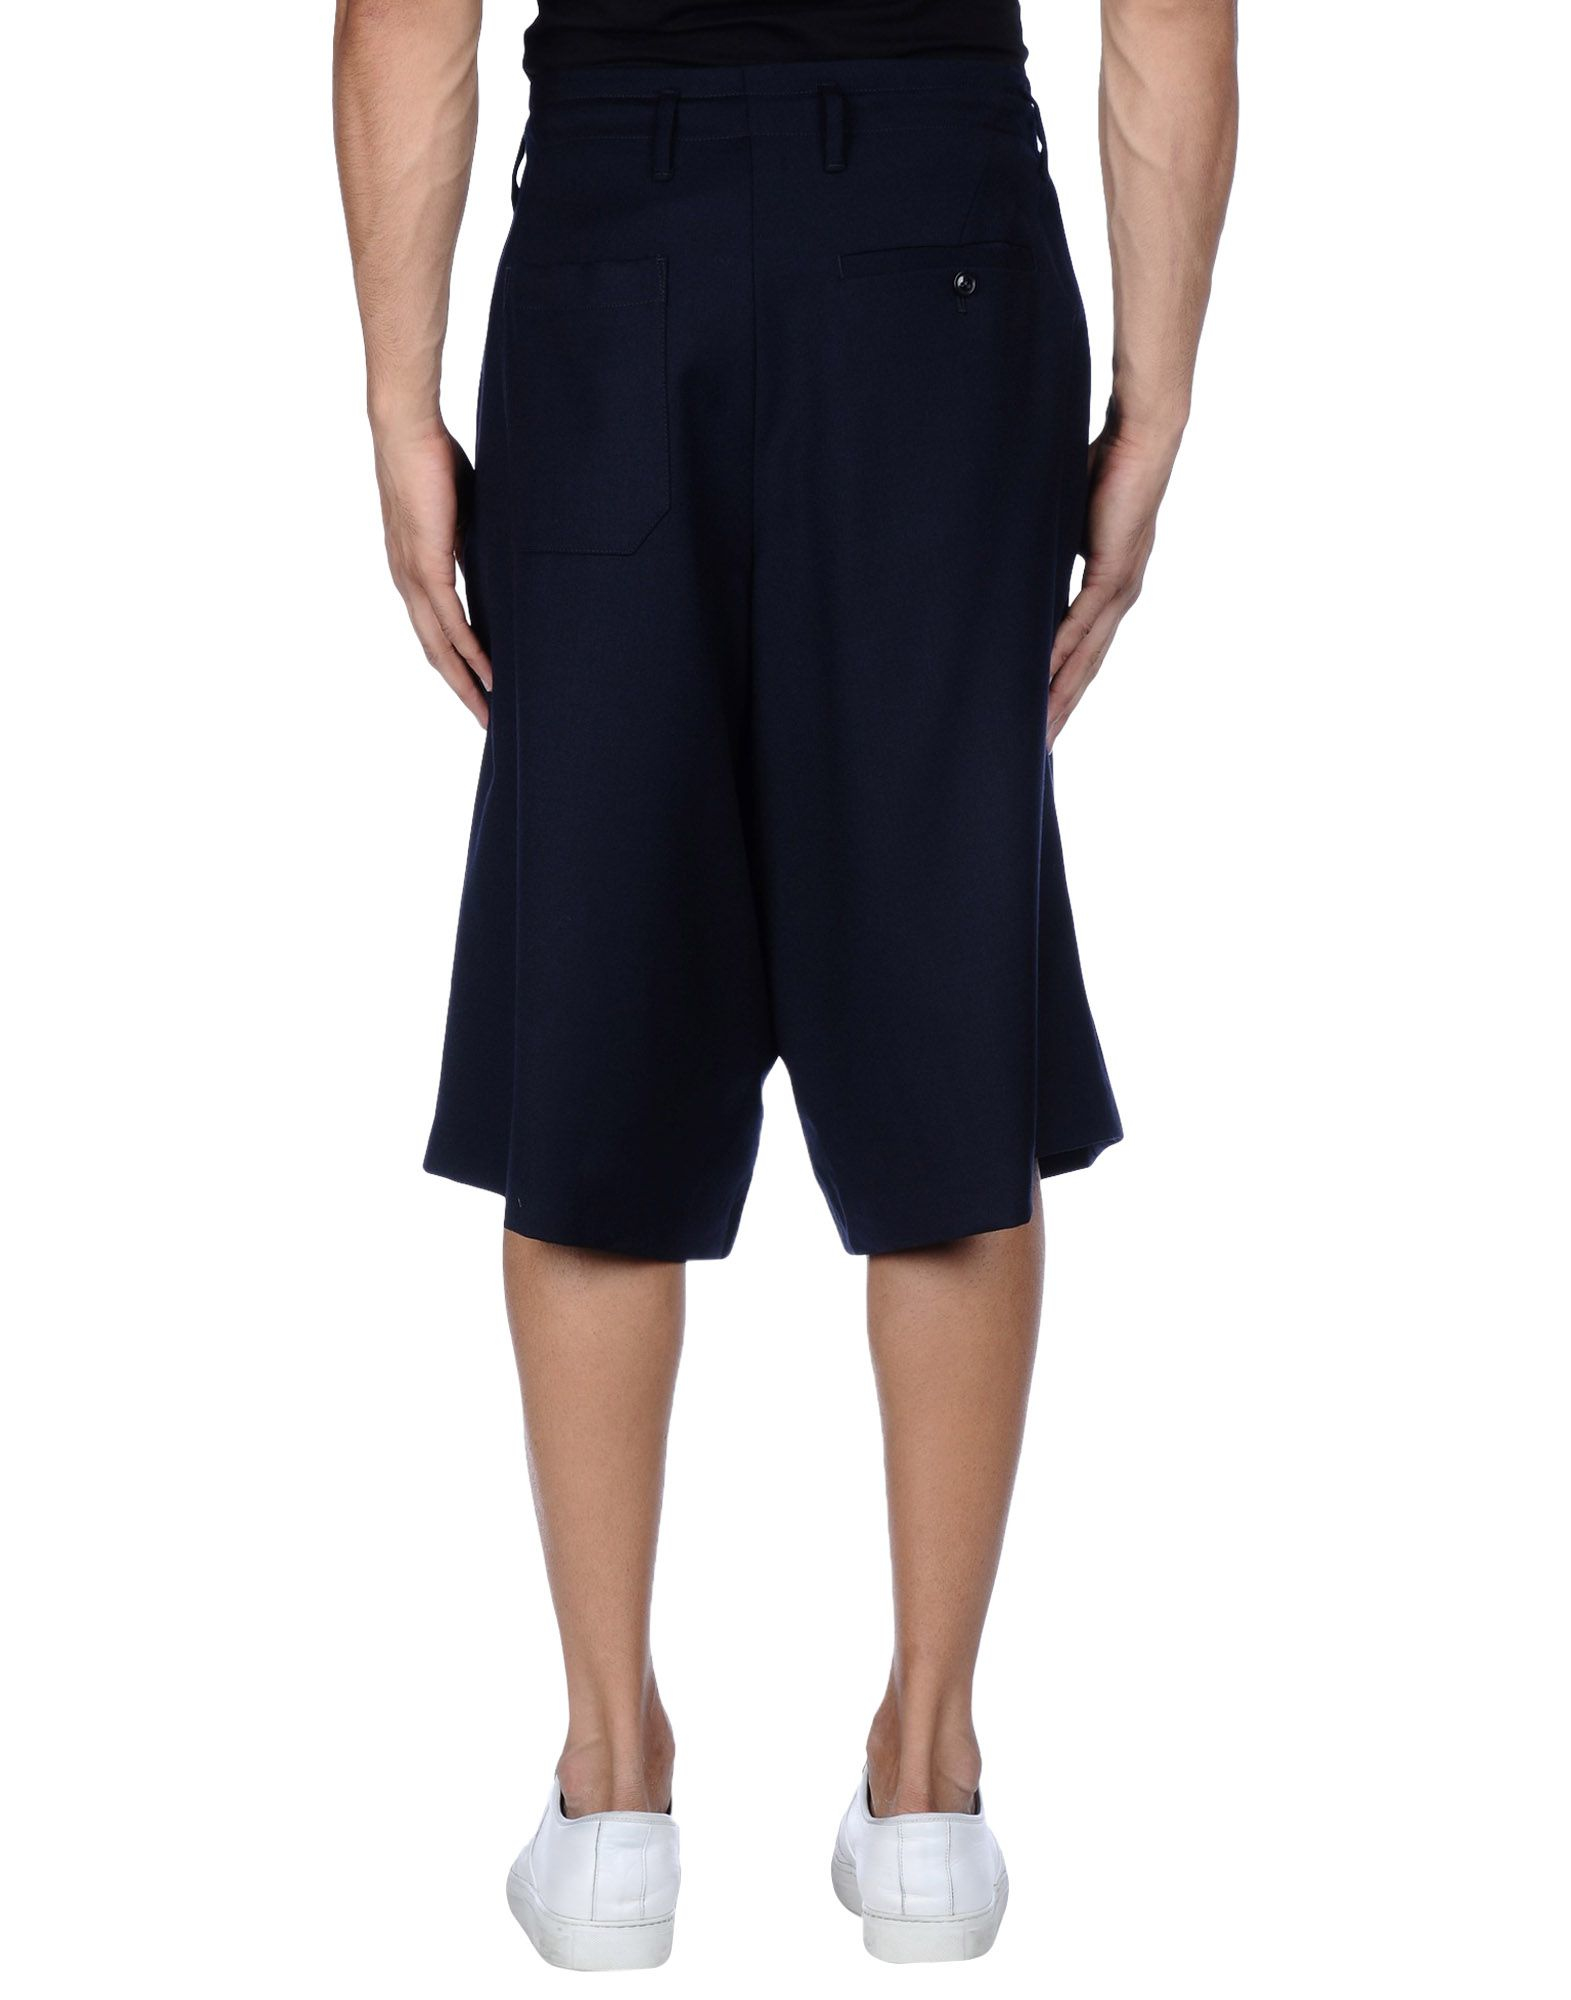 Marc by marc jacobs Bermuda Shorts in Blue for Men | Lyst